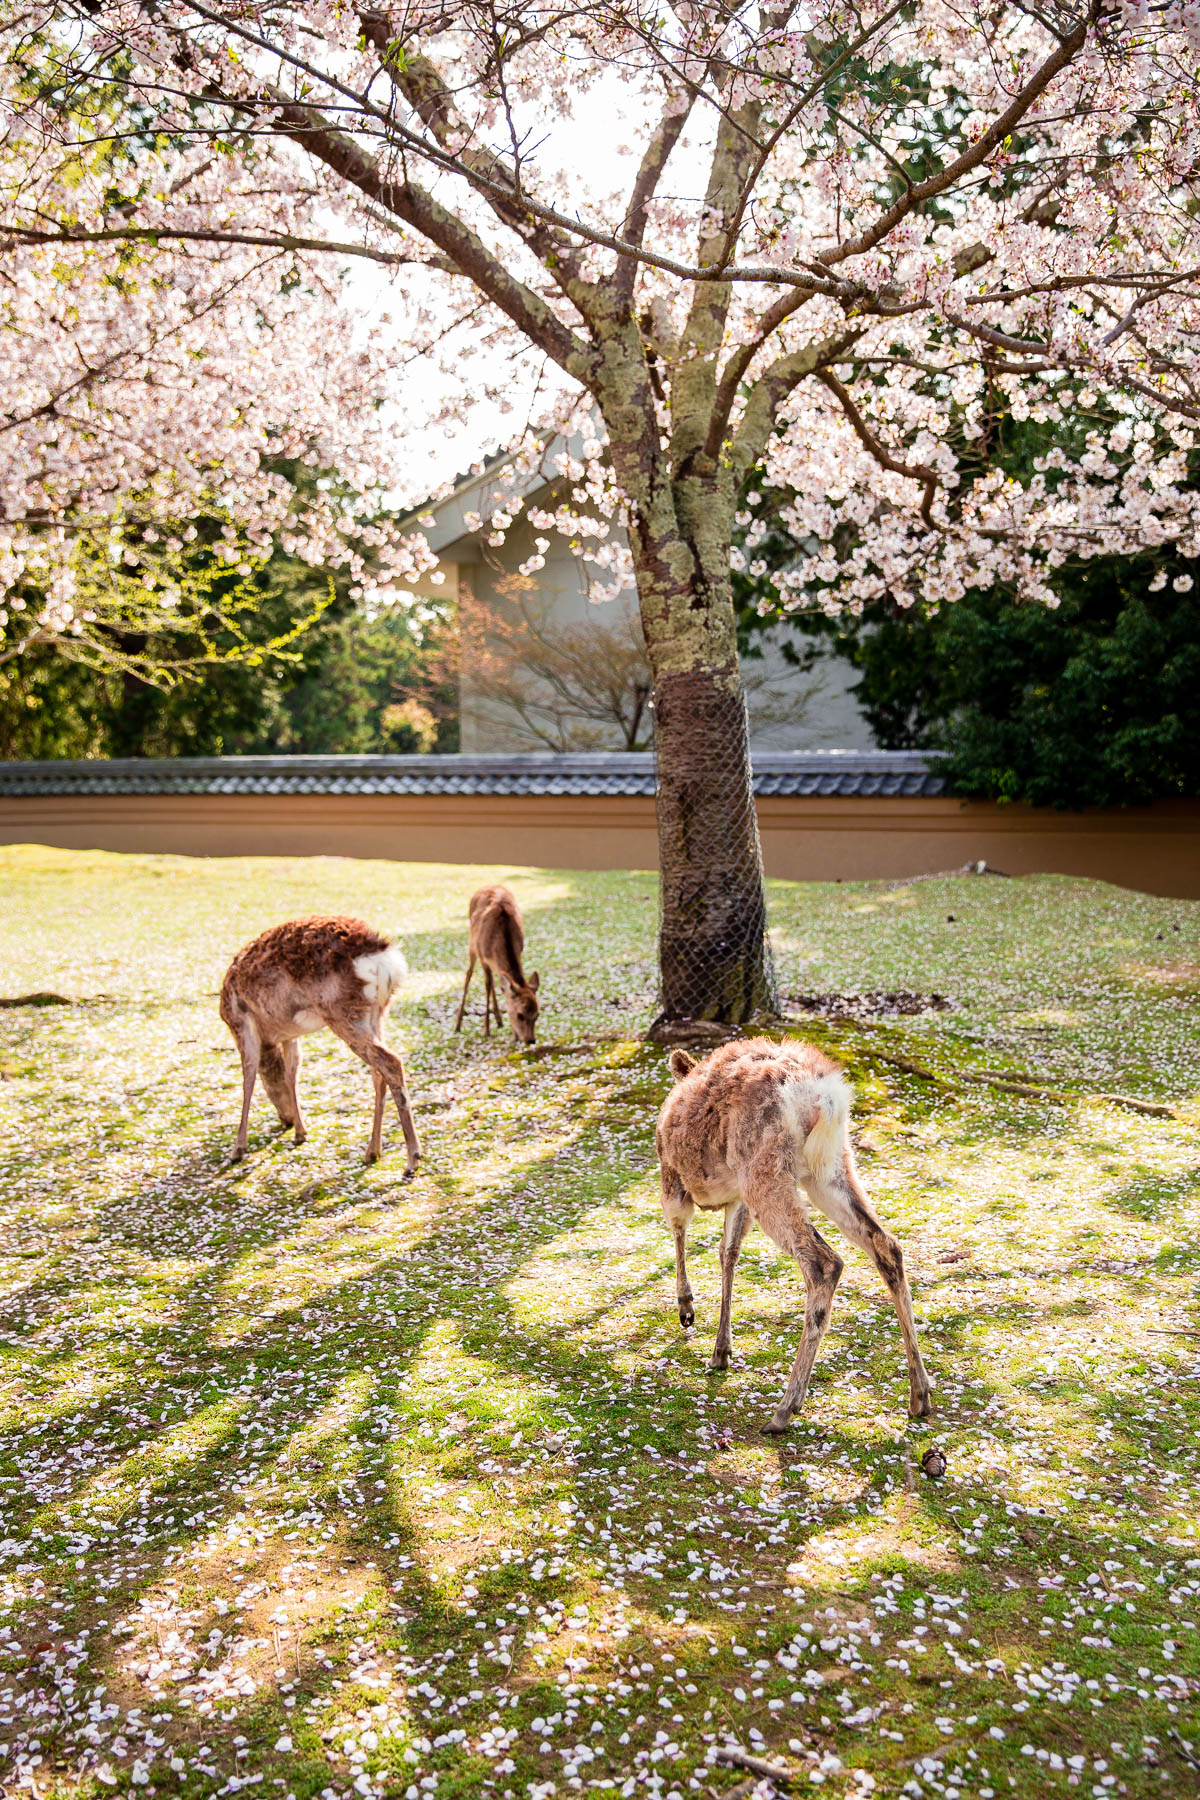 Deer and Cherry Blossom Trees